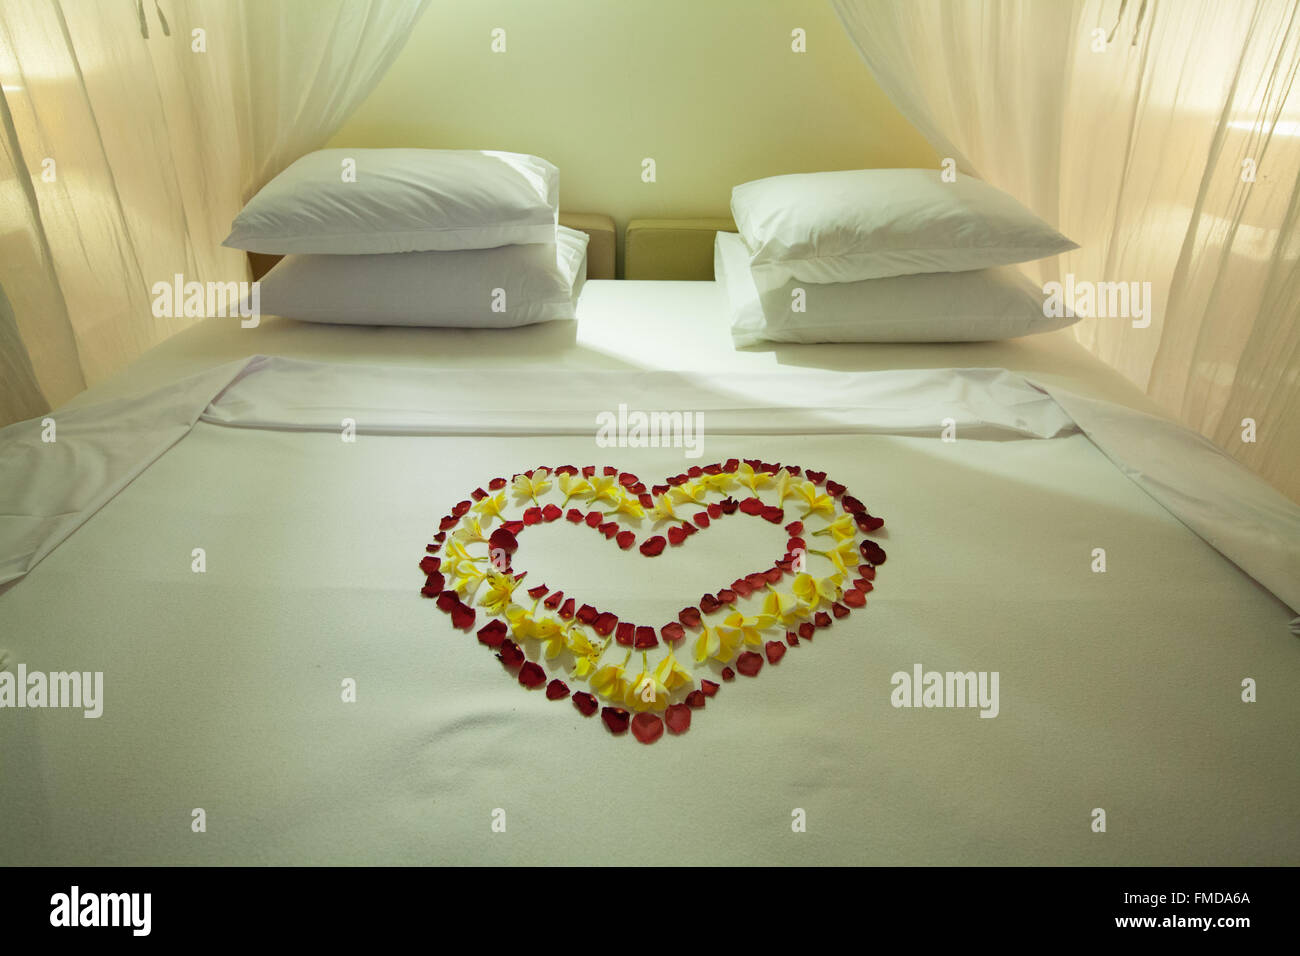 Hotel room with four-poster bed, heart of flowers, decorated double bed, Ubud, Bali, Indonesia - Stock Image